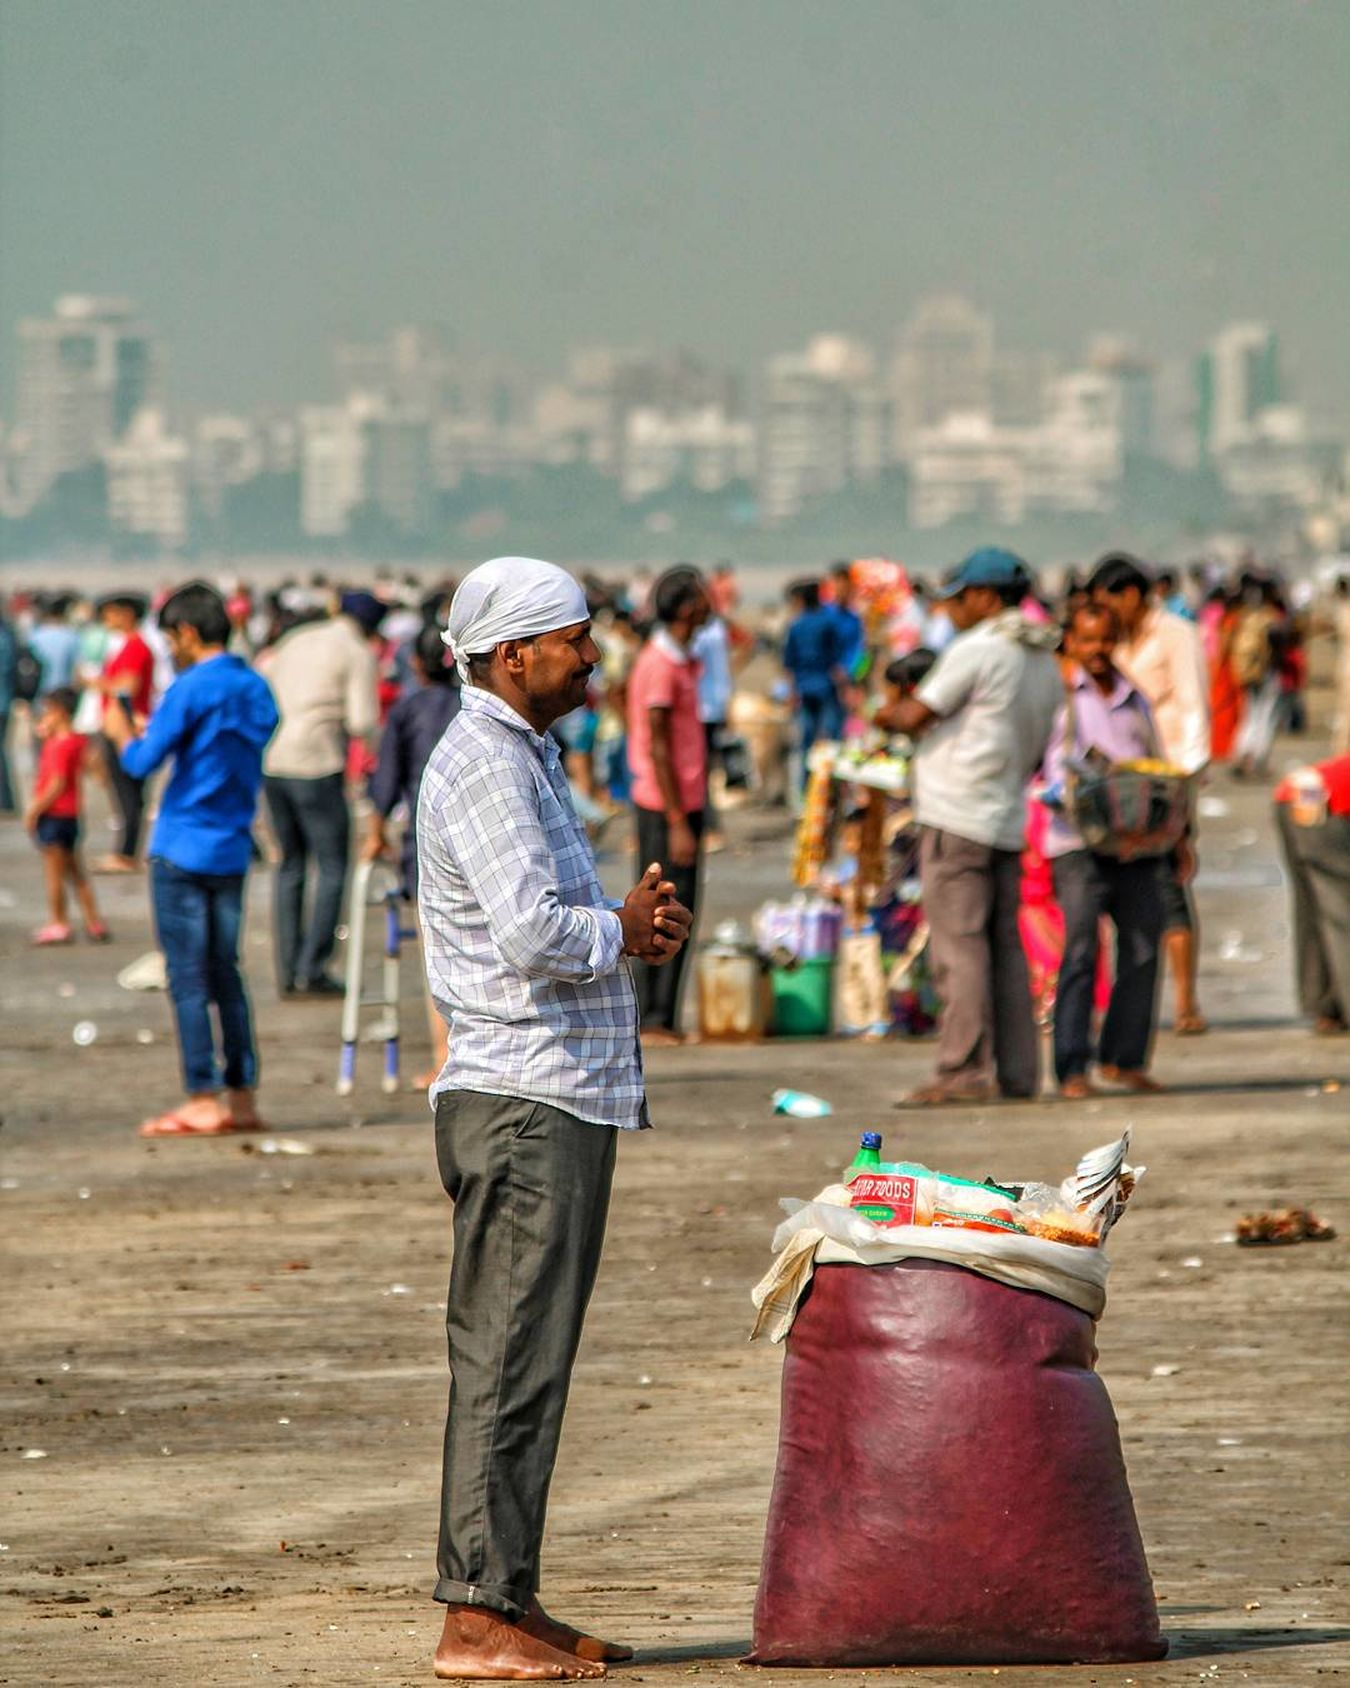 #beach #portrait #India #vendor #streetphotography Focus On Foreground Rear View Adults Only People Adult Full Length Outdoors Men Real People Only Men City Day first eyeem photo